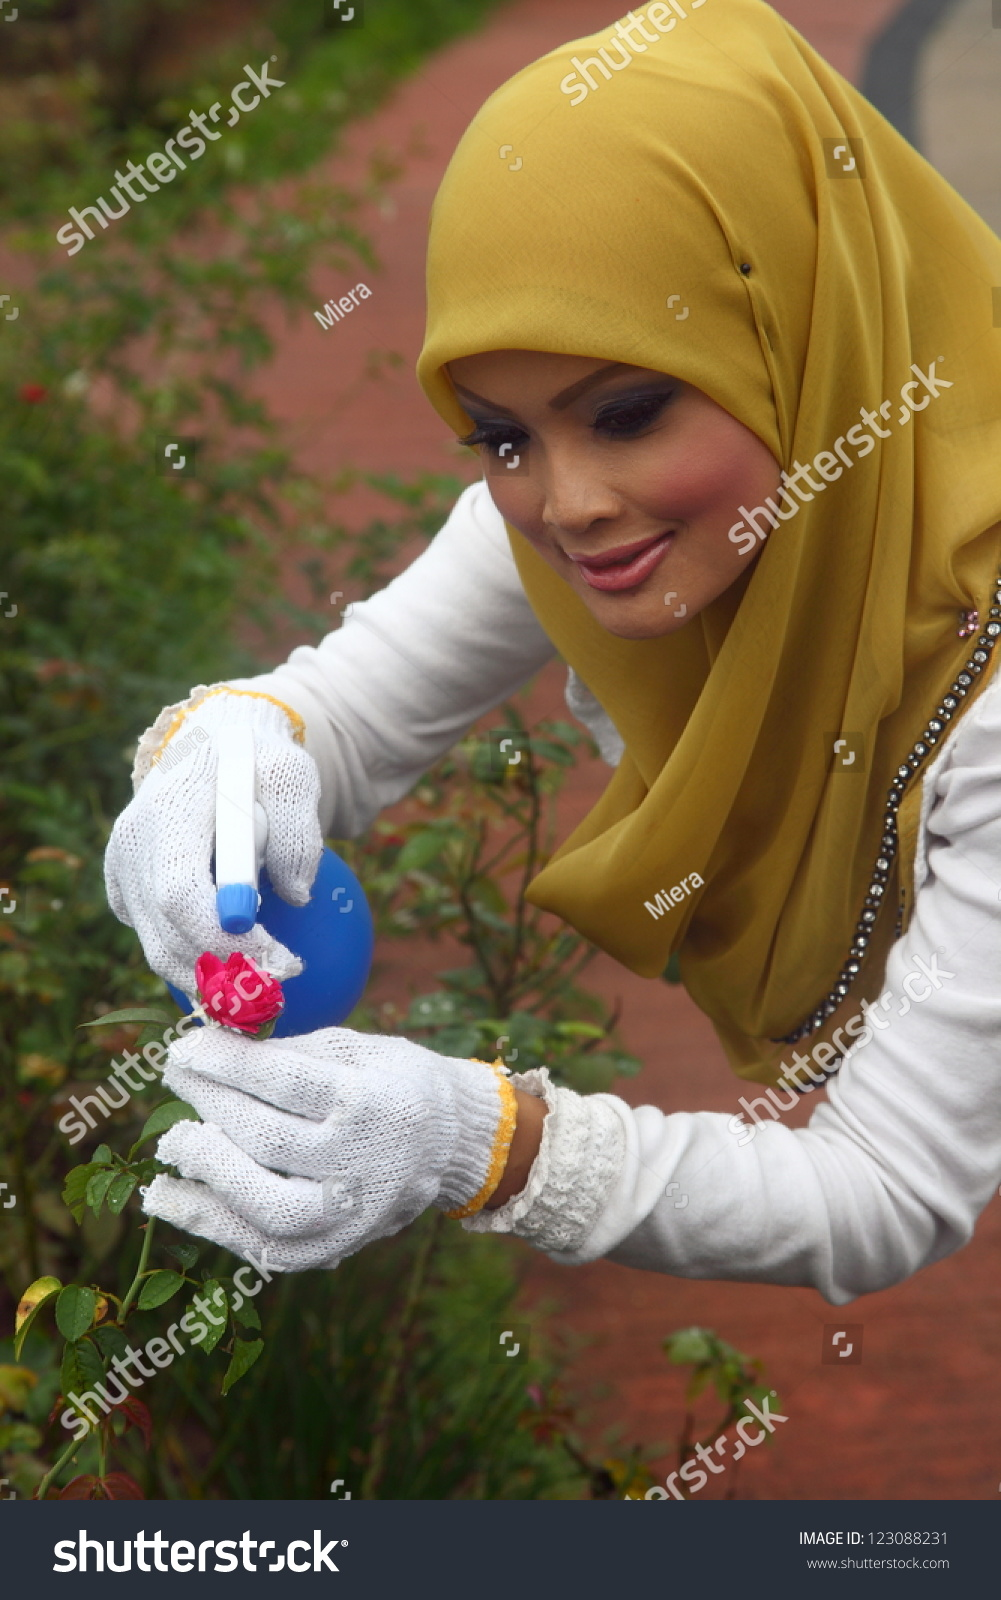 rose bud muslim girl personals The frederick news-post is printed by fnp printing and publishing.